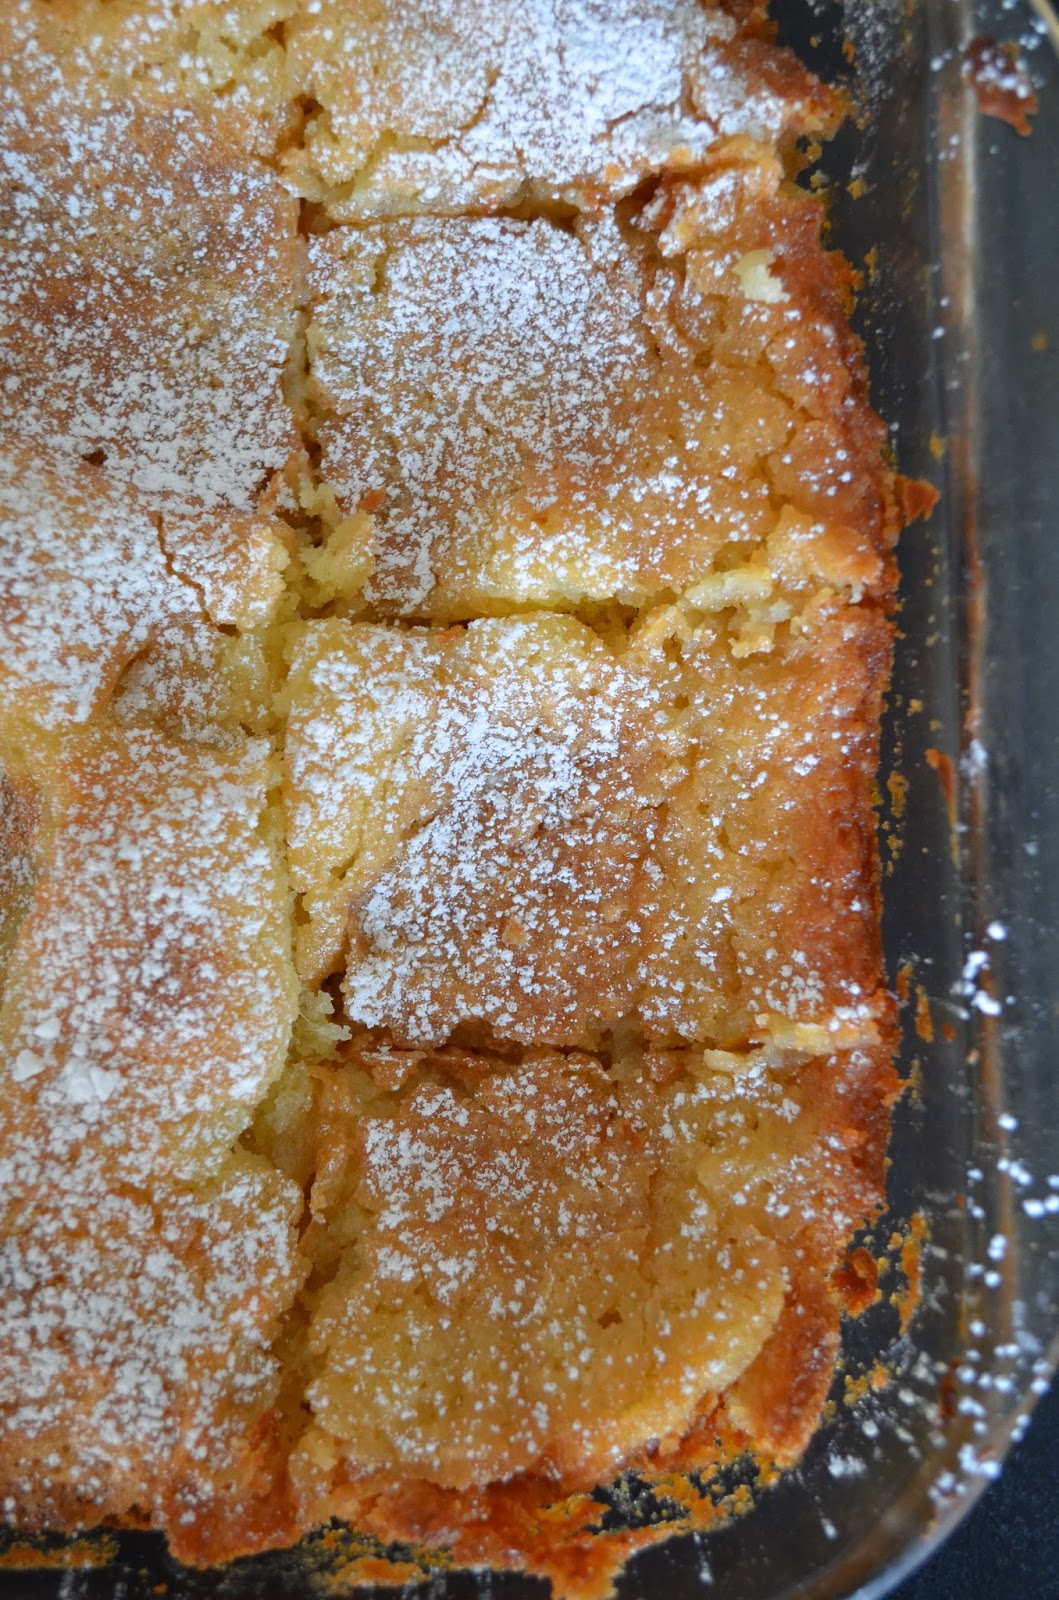 amour fou(d): st. louis gooey butter cake.